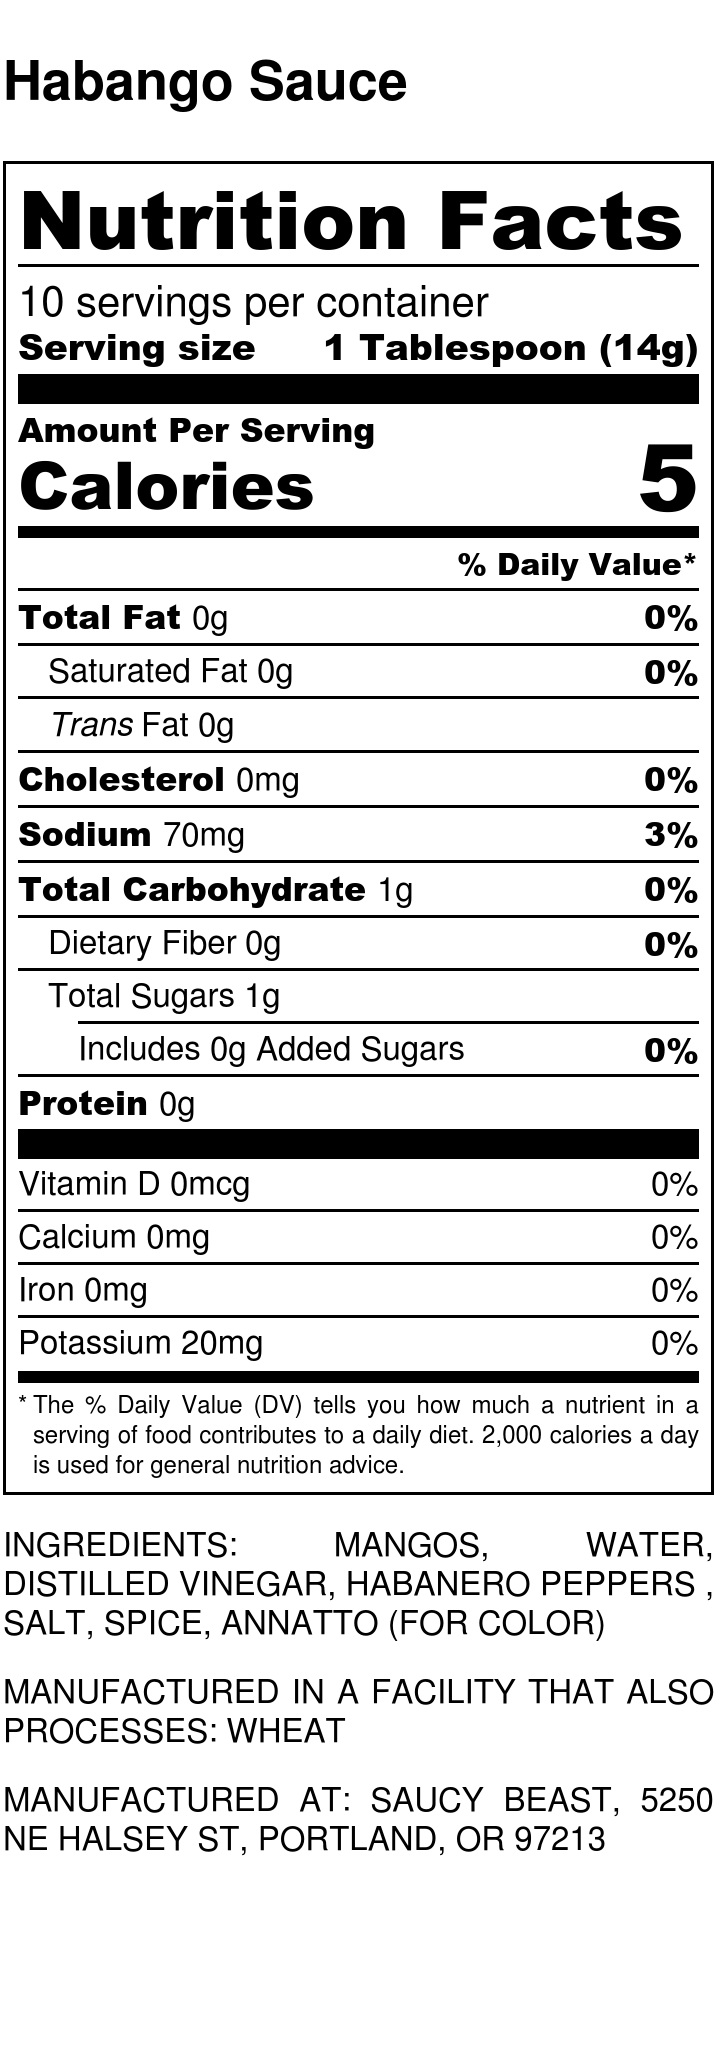 Habango Sauce - Nutrition Label